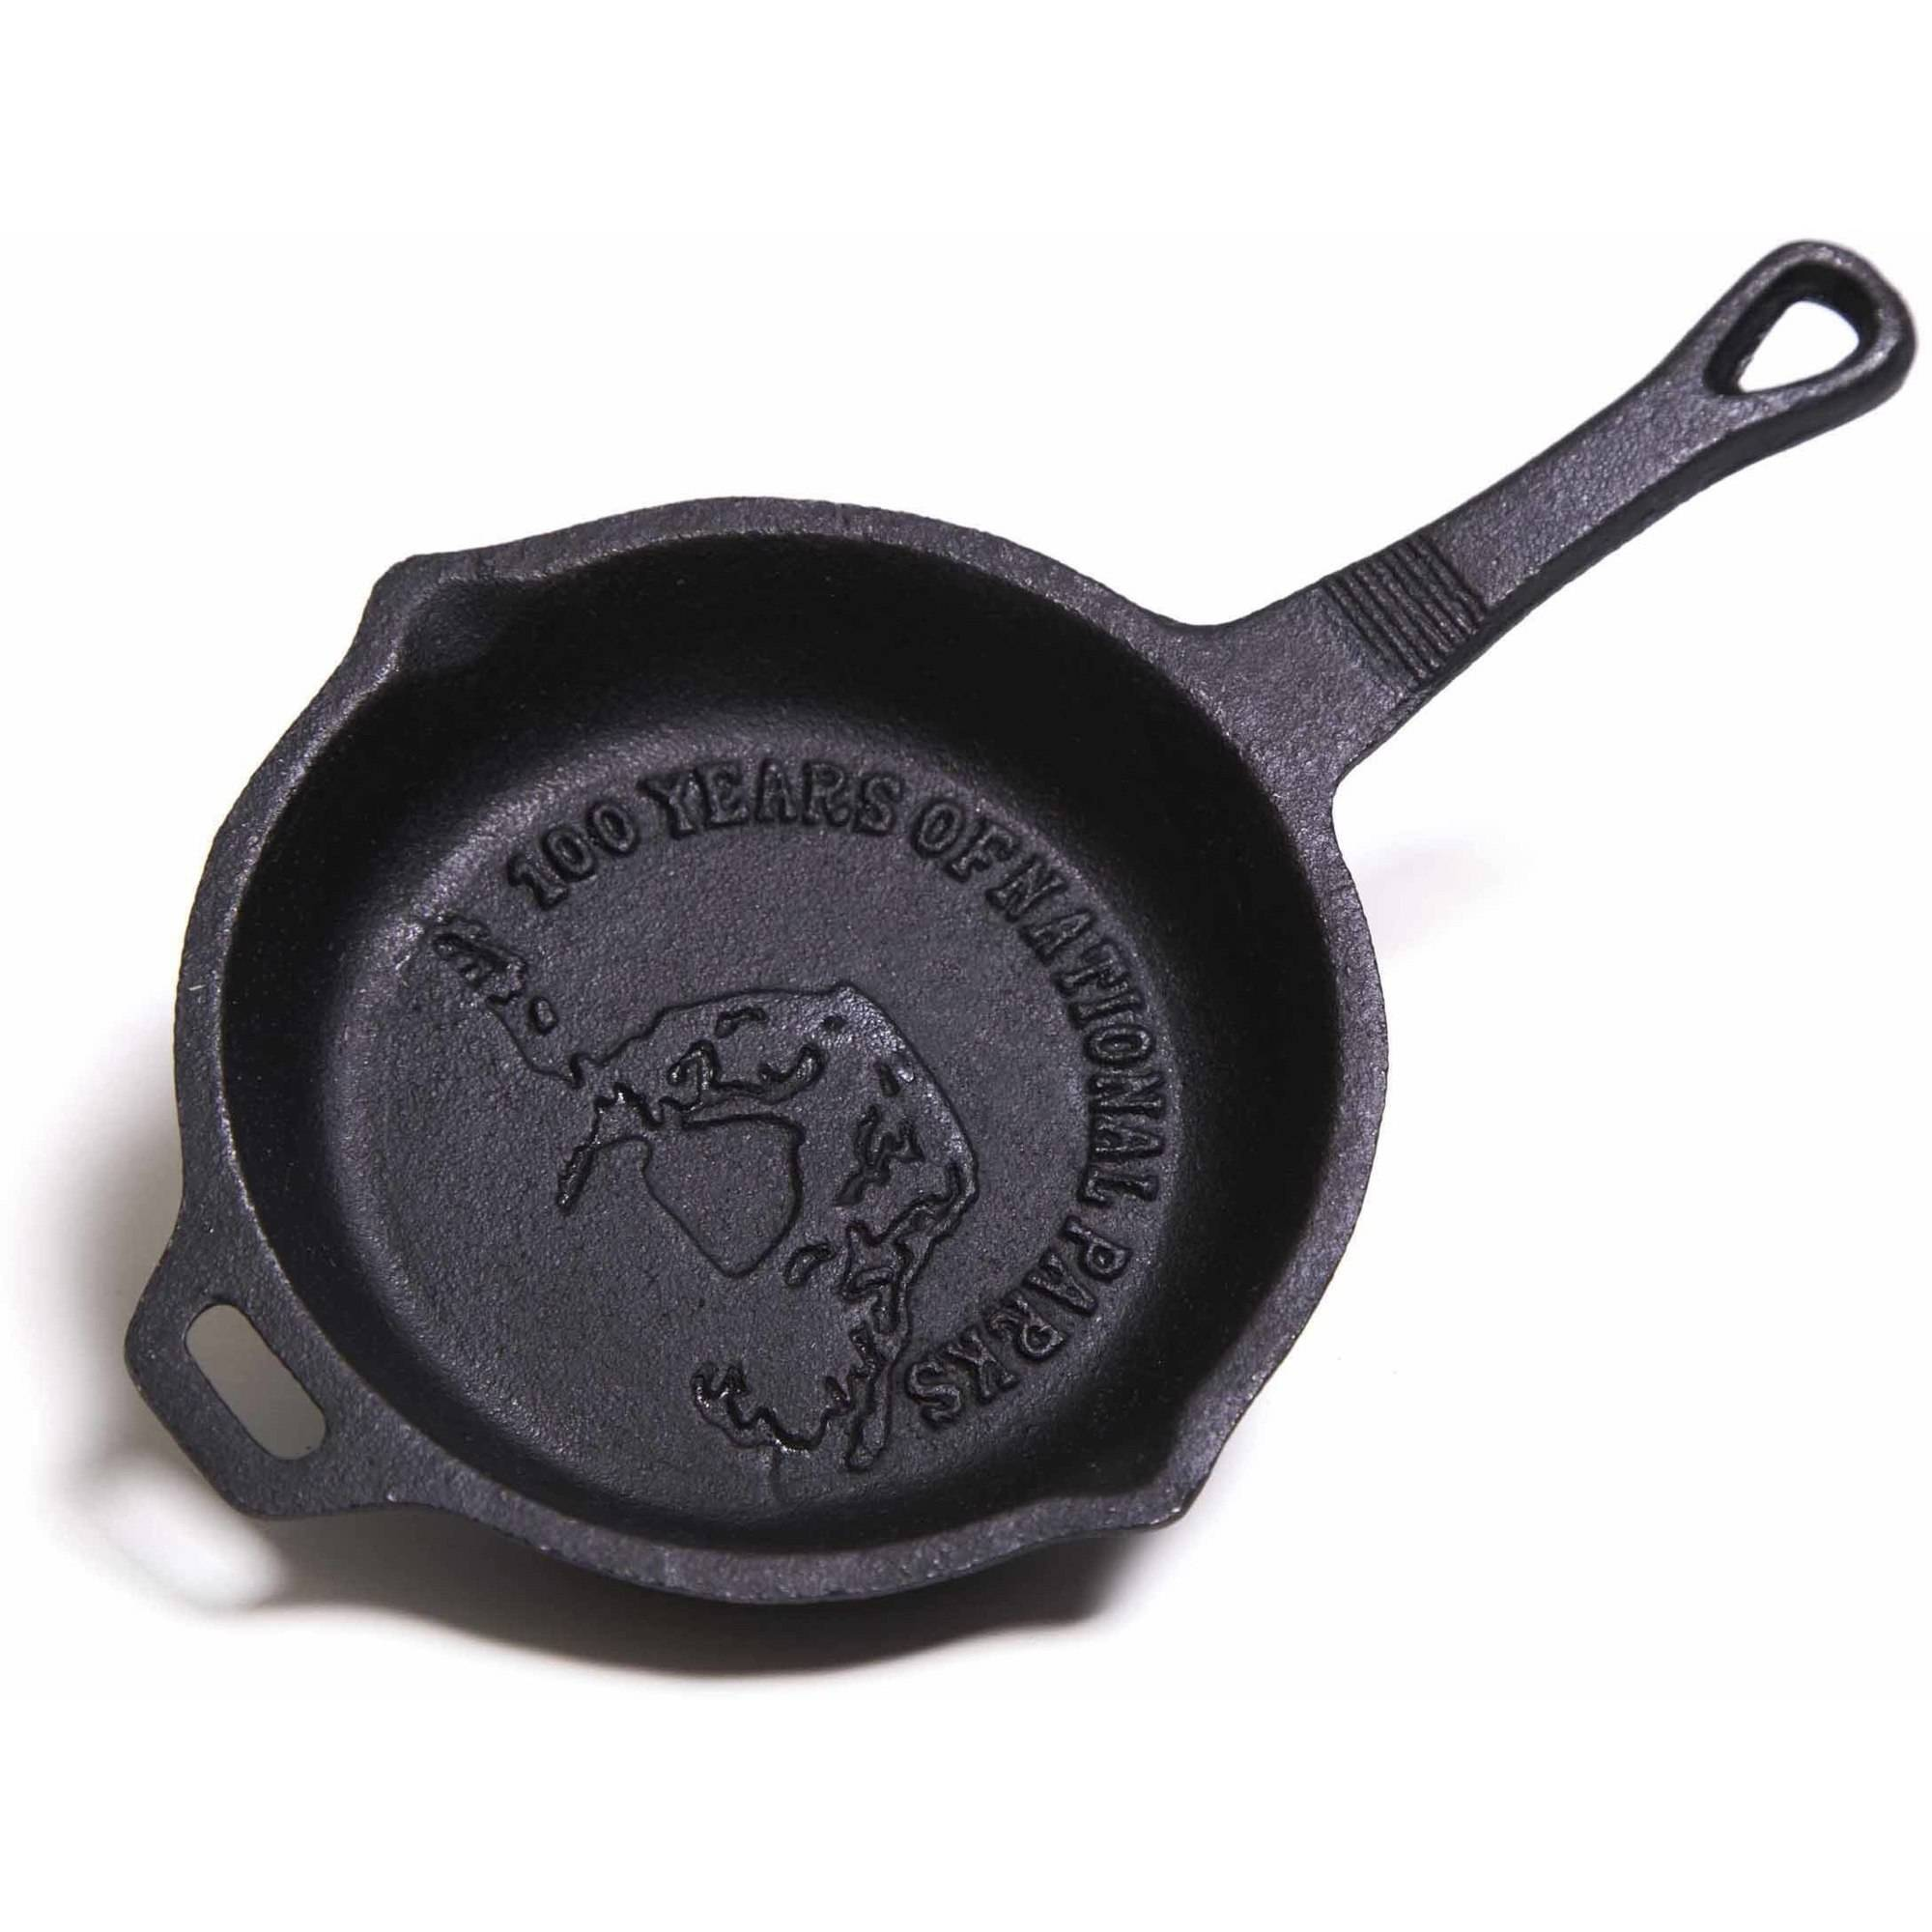 "Camp Chef 4"" Cast Iron, Pre Seasoned Skillet with Dual Pour Spouts"